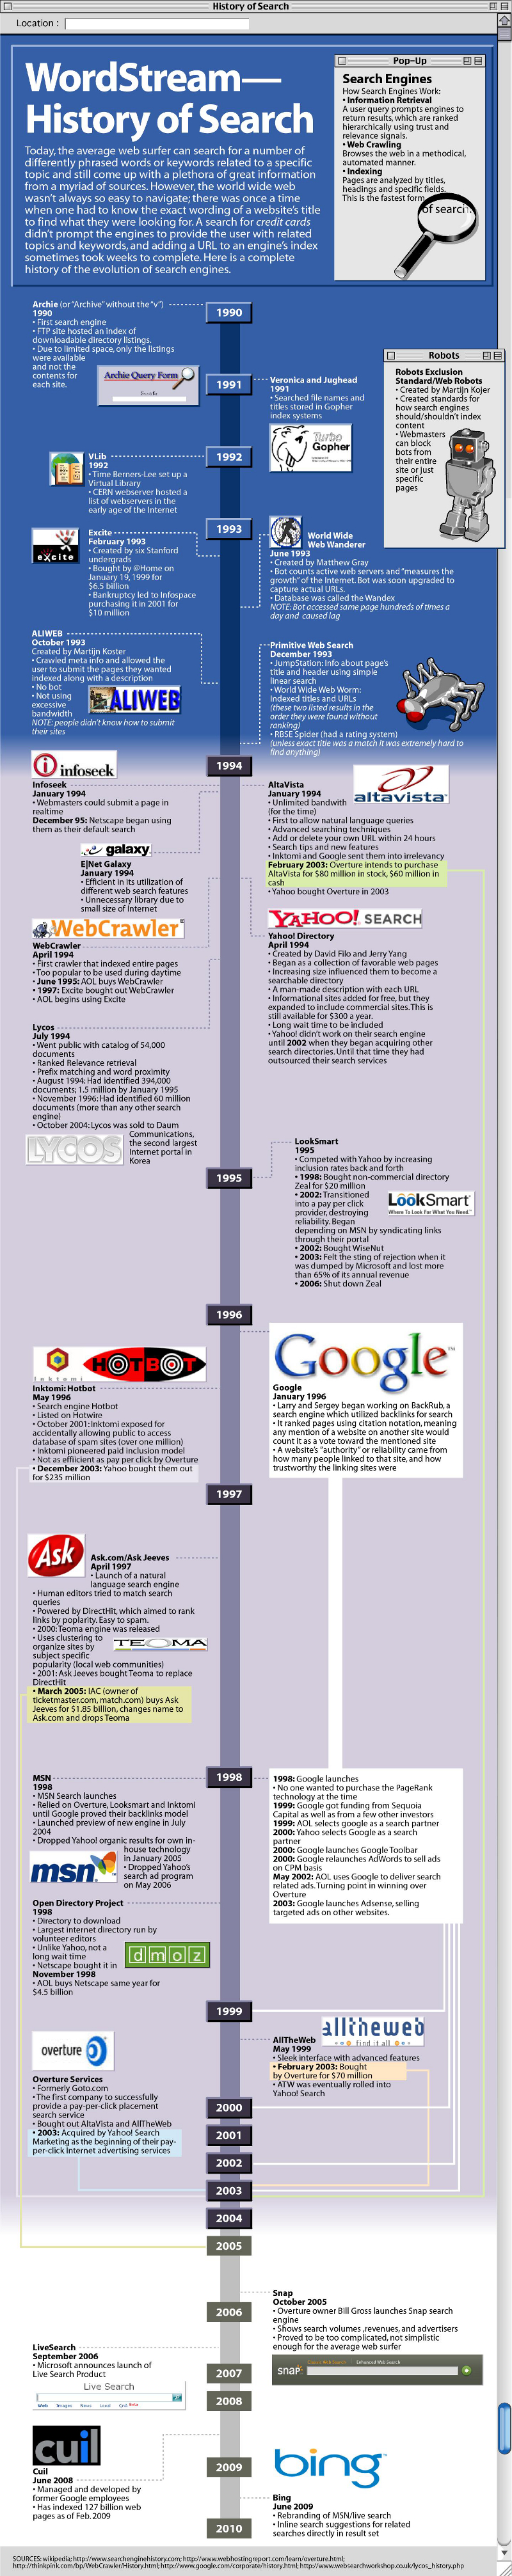 Internet Search Timeline